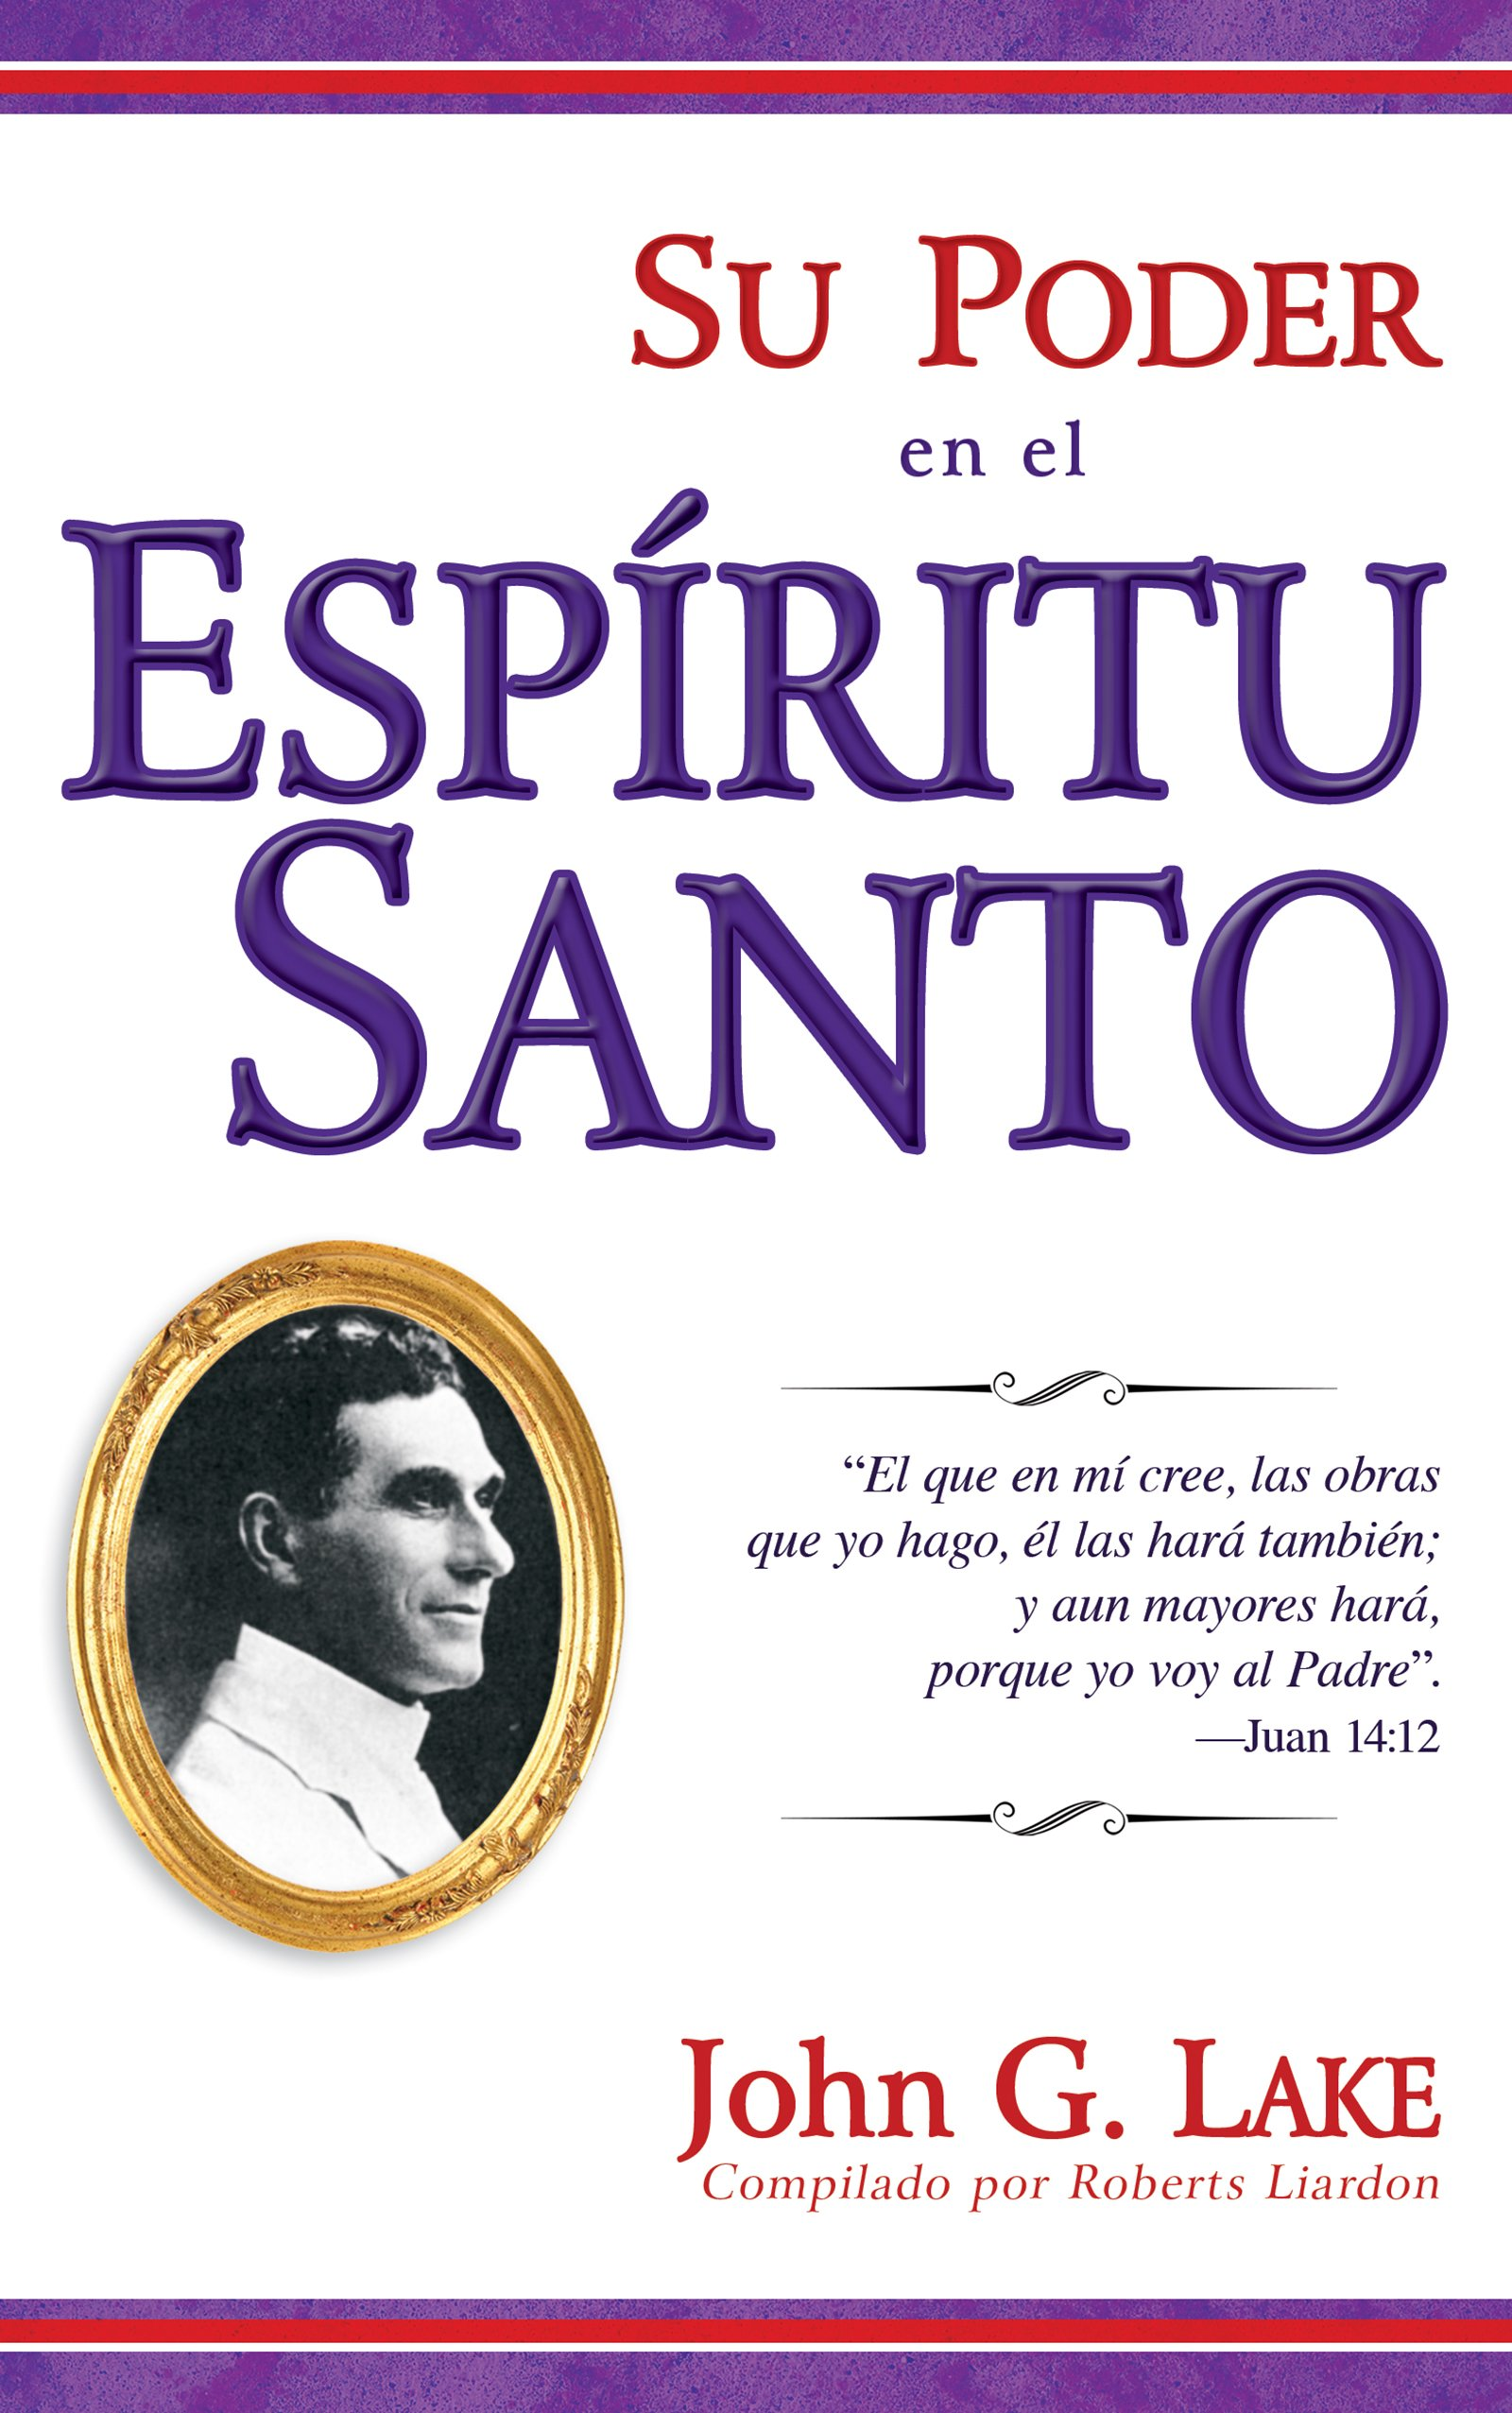 Su poder en el Espiritu Santo (Spanish Edition): John G. Lake, Roberts  Liardon: 9781603742757: Amazon.com: Books